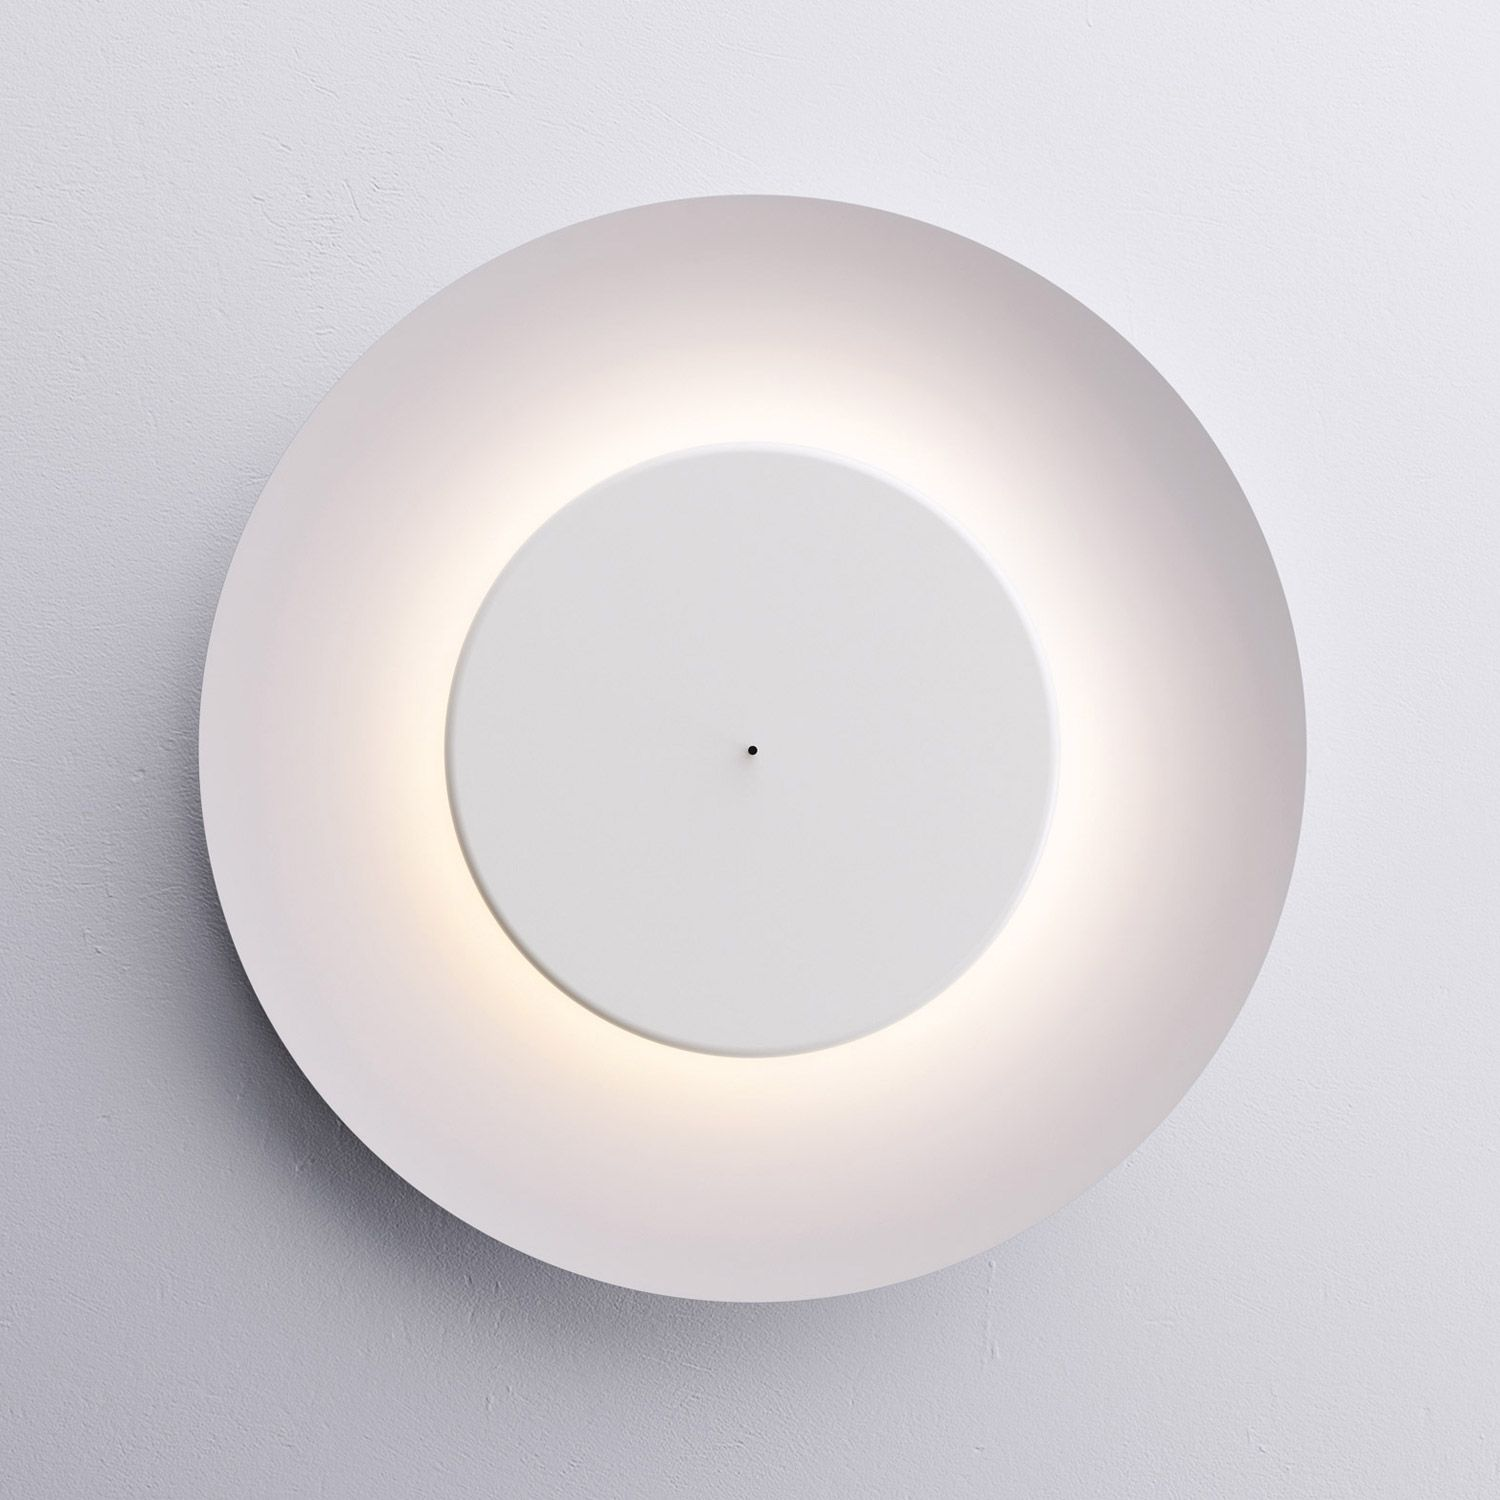 Lunaire wall lamp: soft Lighting for atmosphere | lighting ...